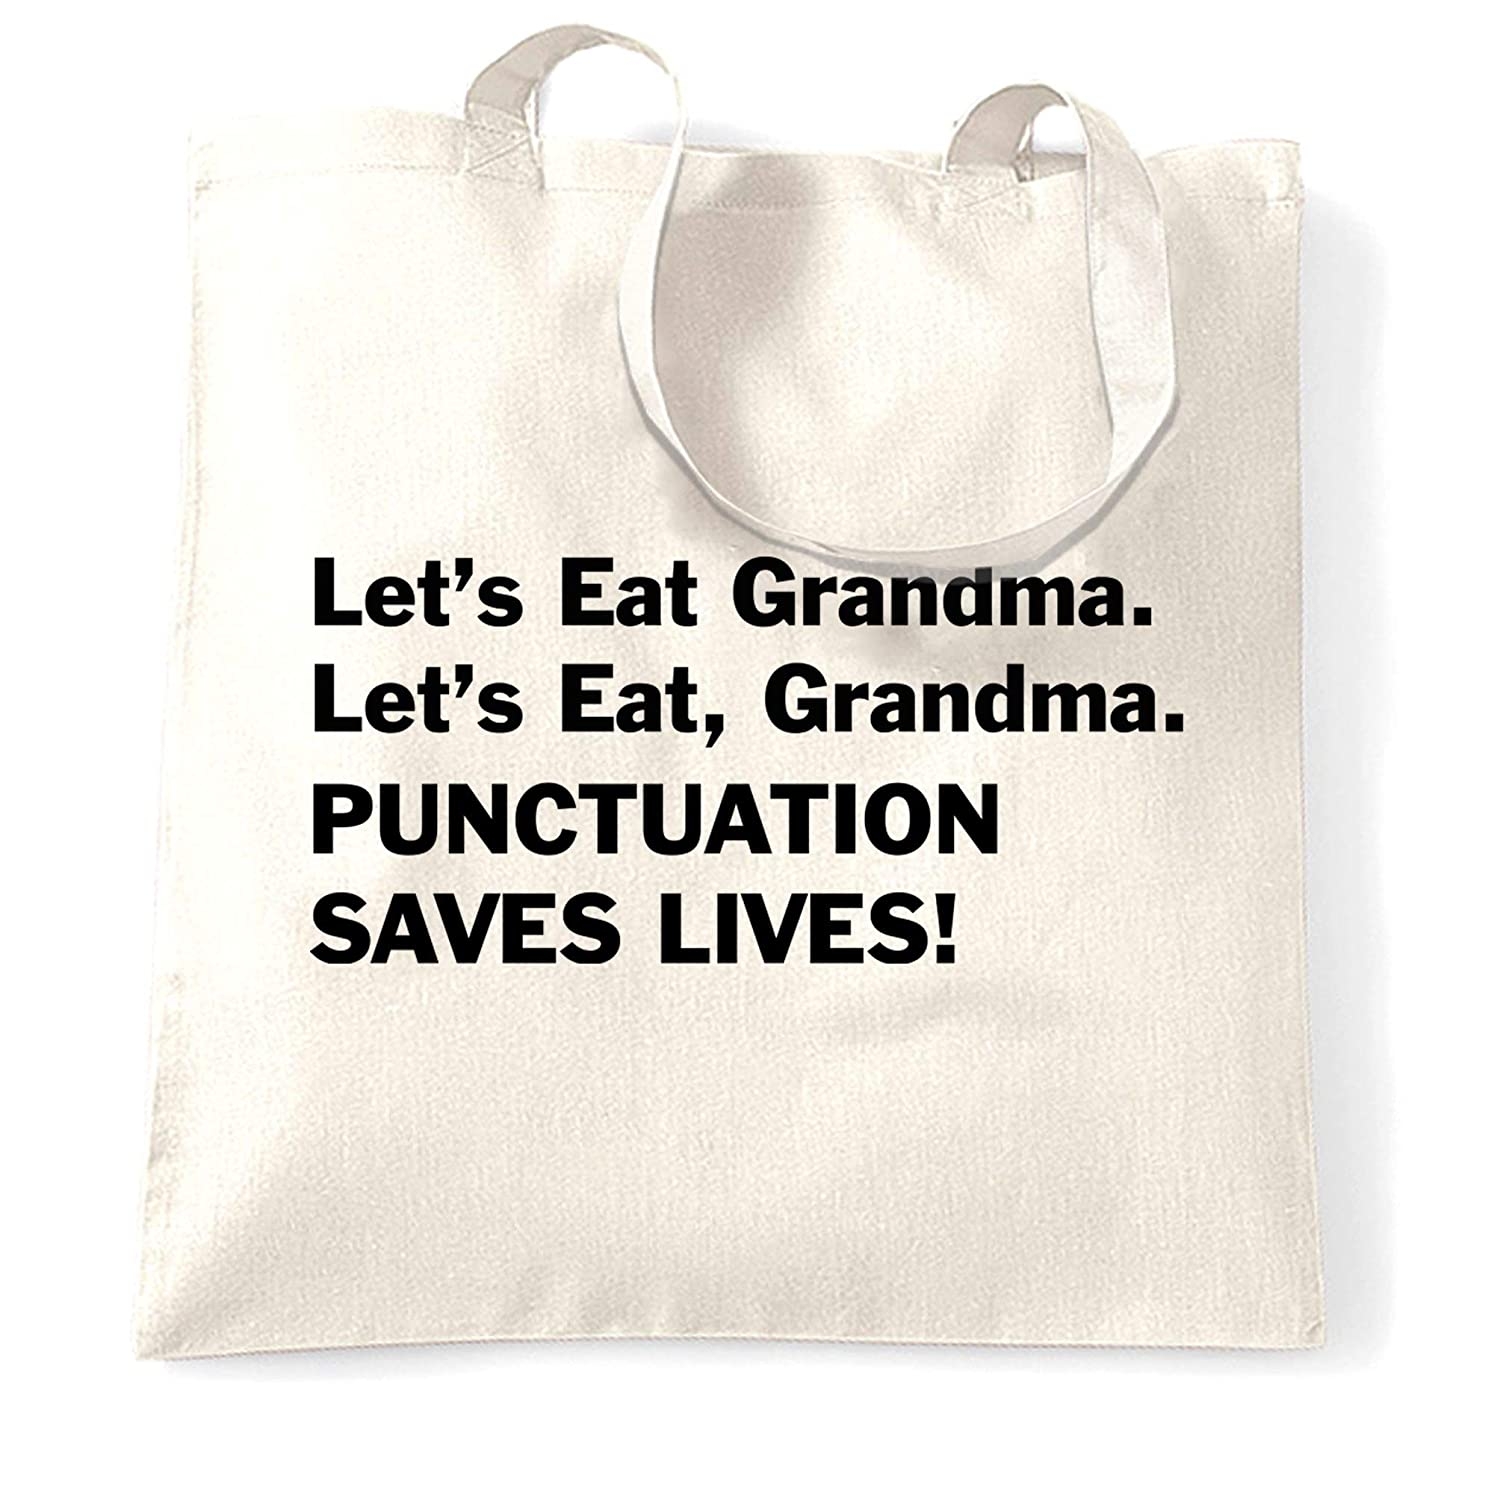 I Love Eating My Cat and Leaving Out Commas Large Beach Tote Bag Funny